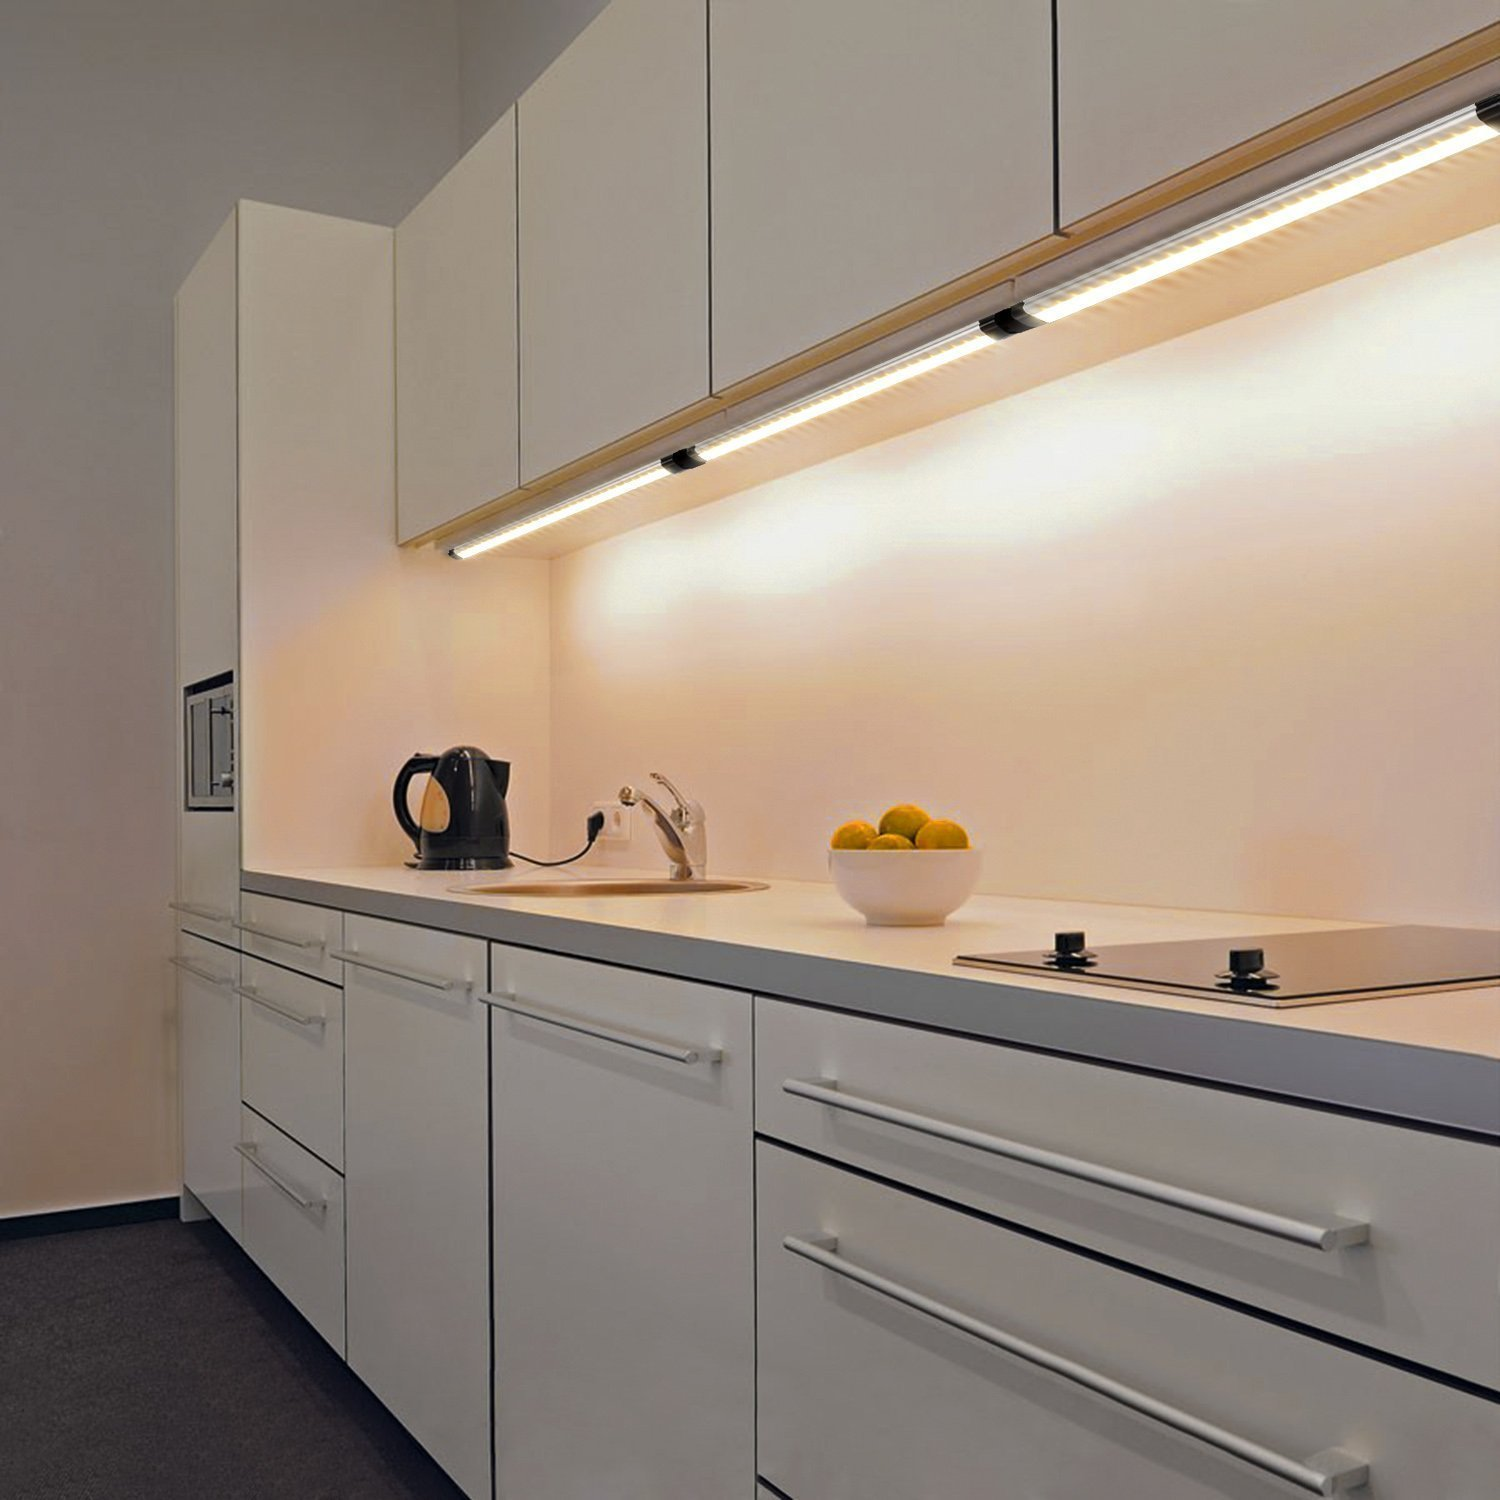 for g cupboards kitchen cupboard lighting qtsi under co contempory